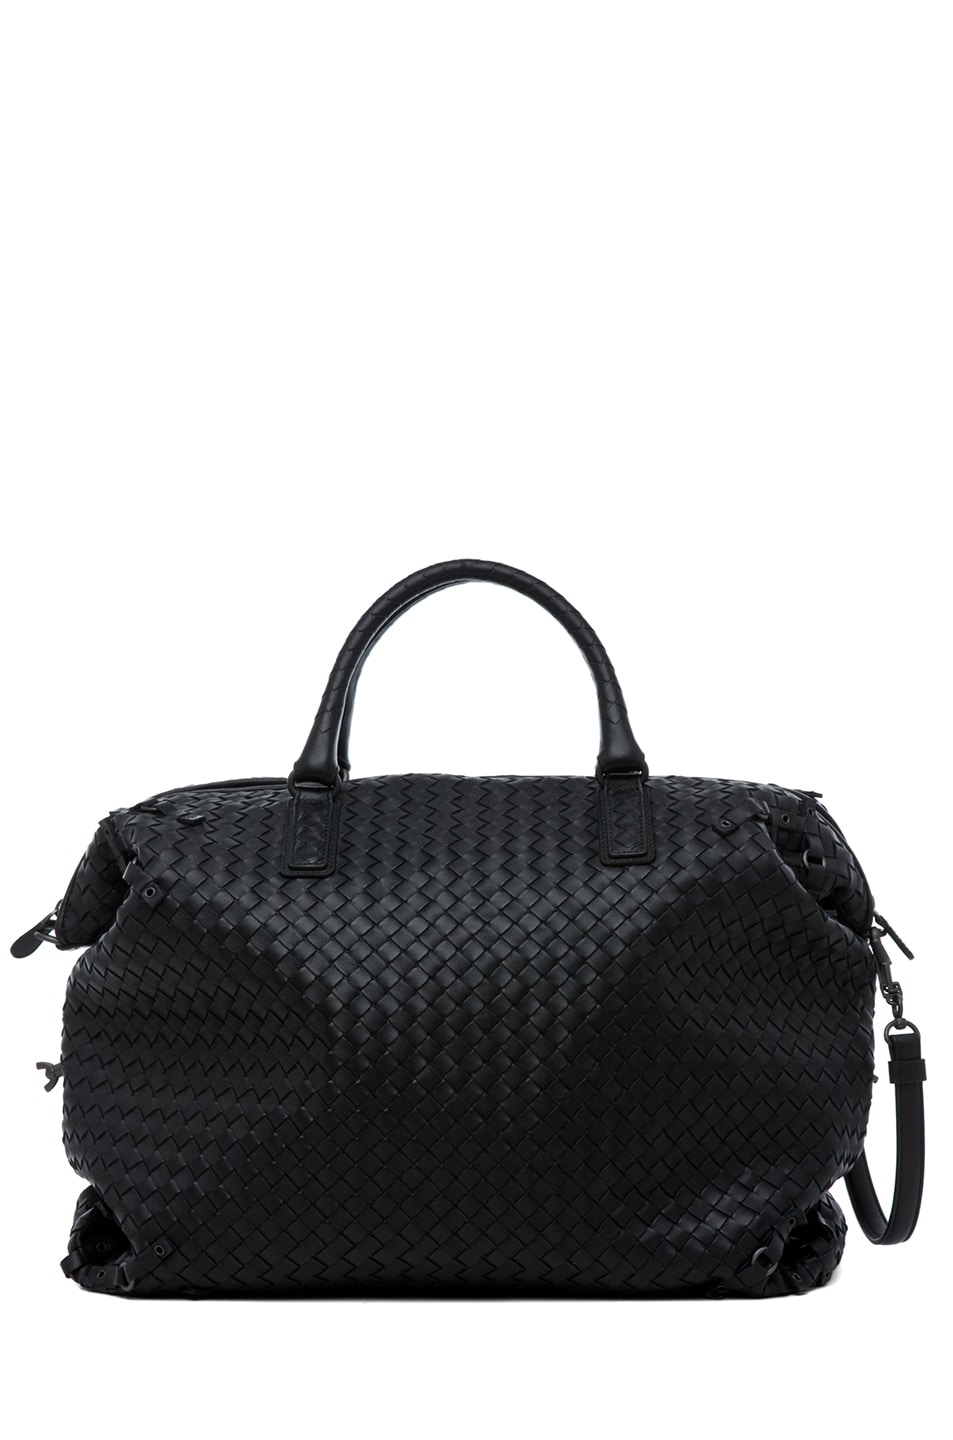 Image 2 of Bottega Veneta Maxi Tote in Nero